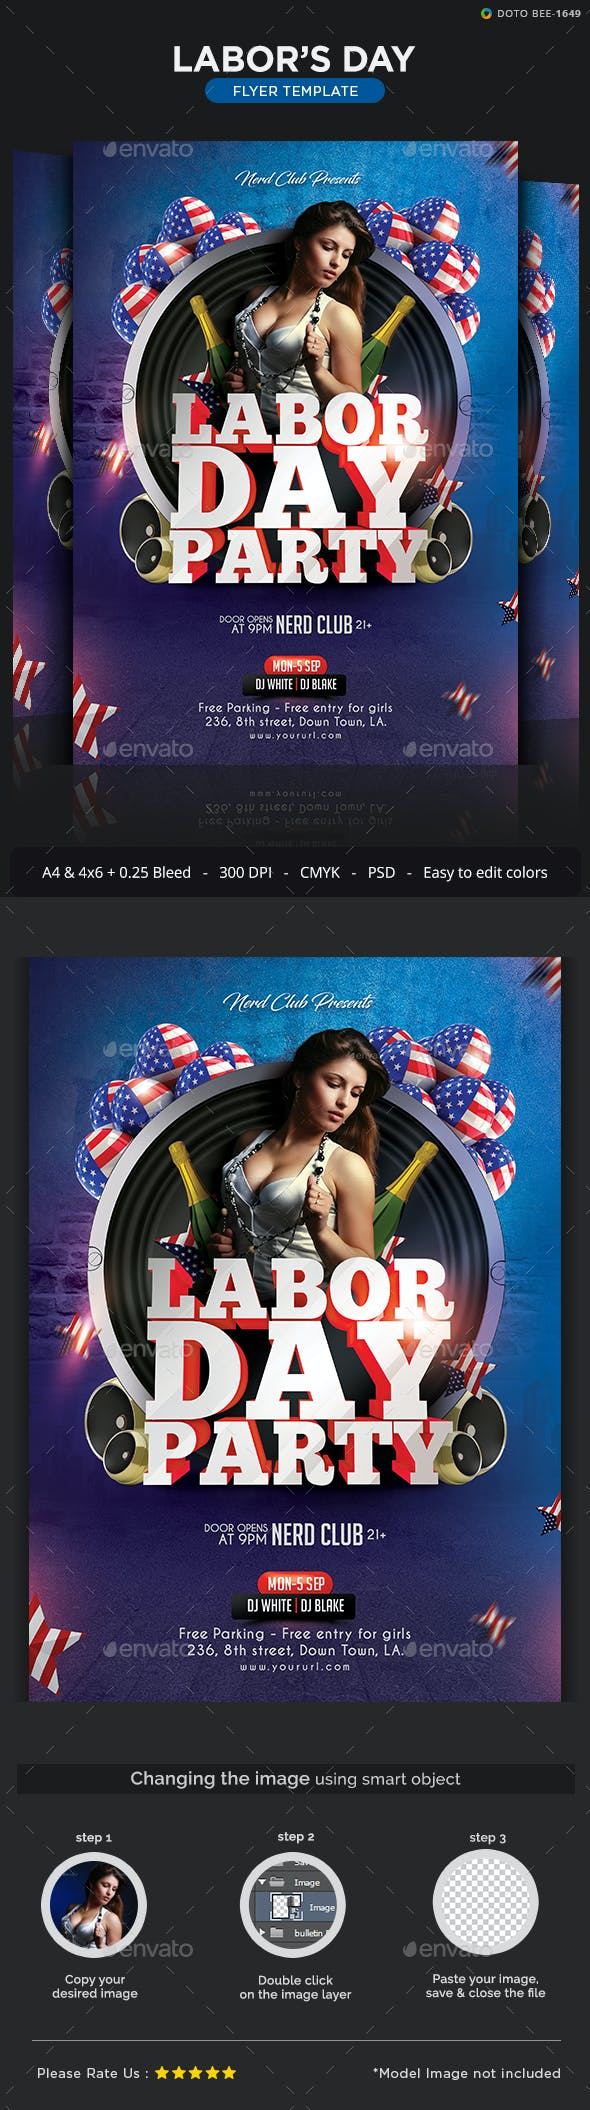 labor day party flyer template 2 sizes by hyov graphicriver